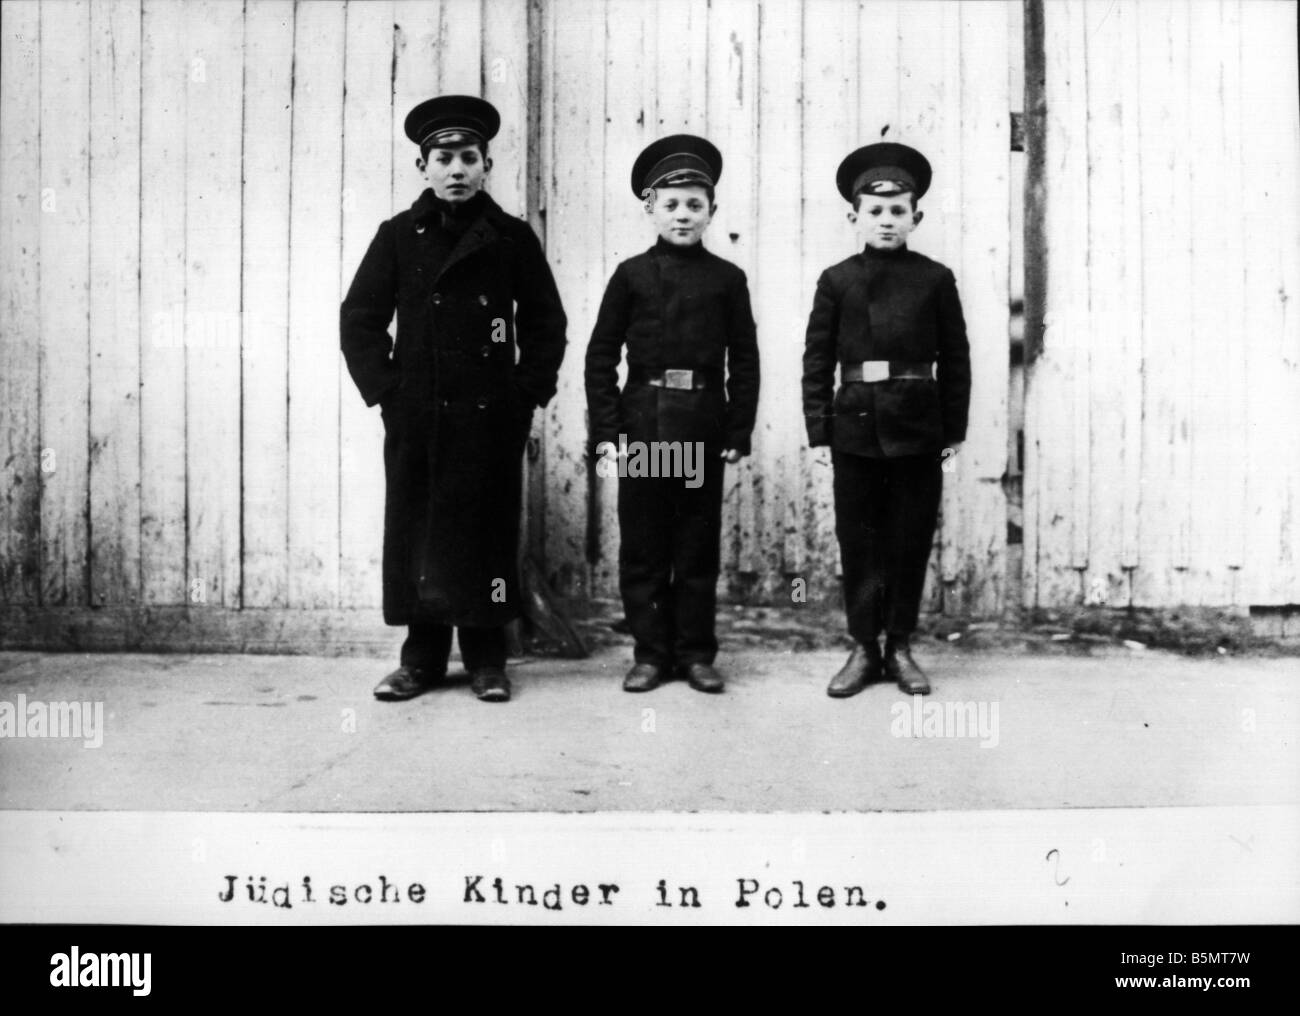 9IS 1915 0 0 A1 40 Jewish children in Poland 1915 History of Judaism Eastern Jews Jewish children in Poland Photo - Stock Image